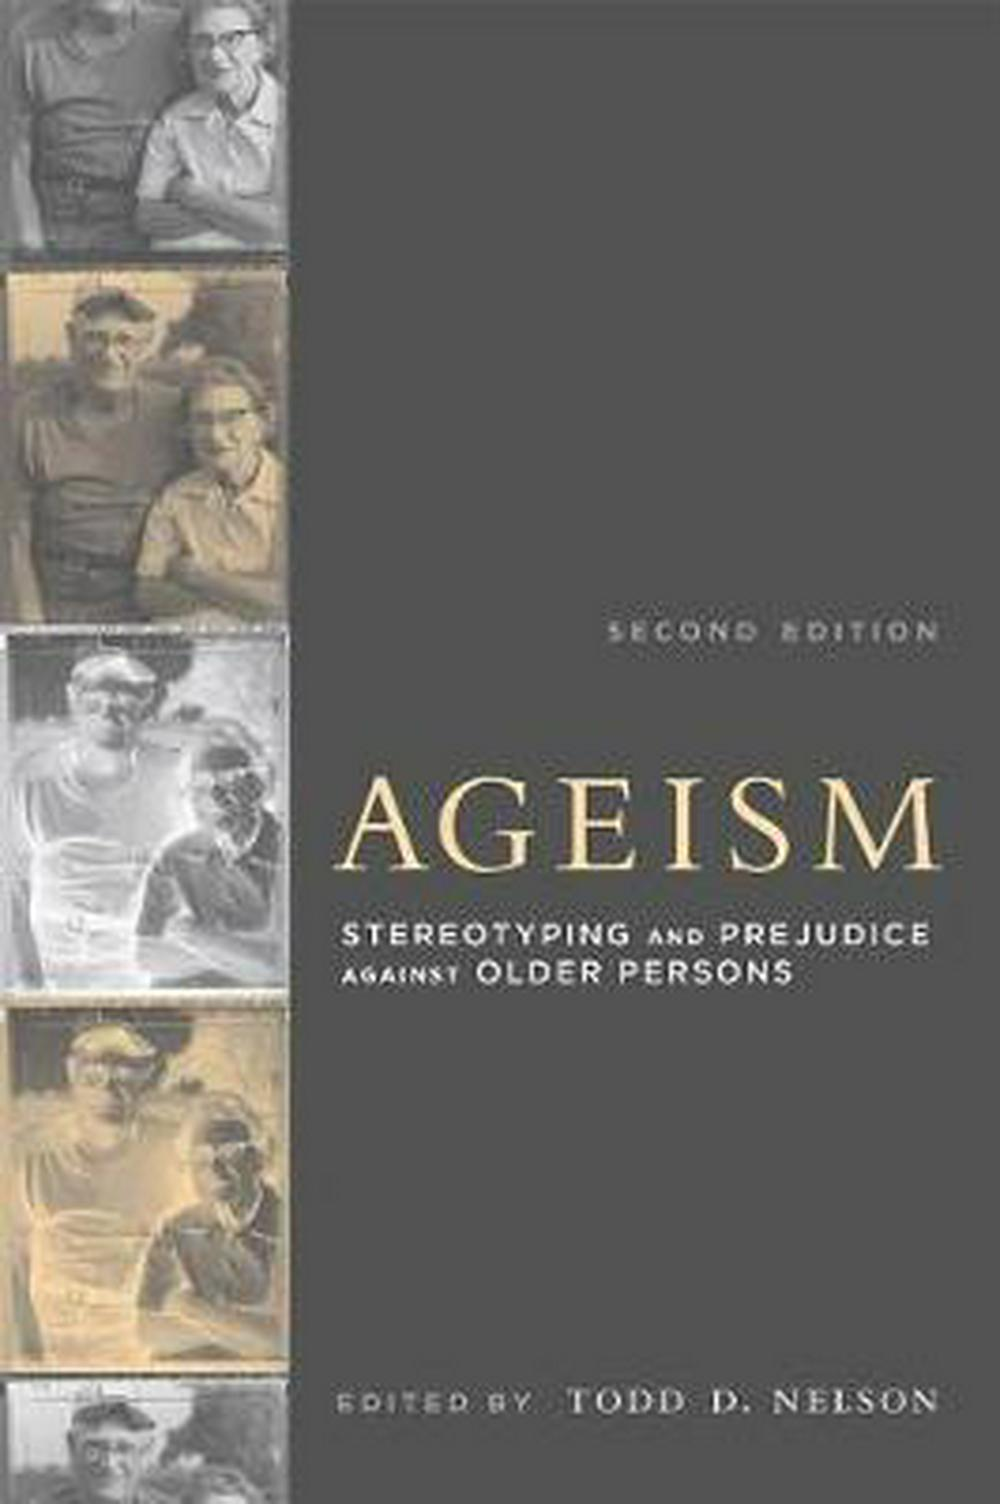 Ageism: Stereotyping and Prejudice Against Older Persons by Todd D. Nelson, ISBN: 9780262533409